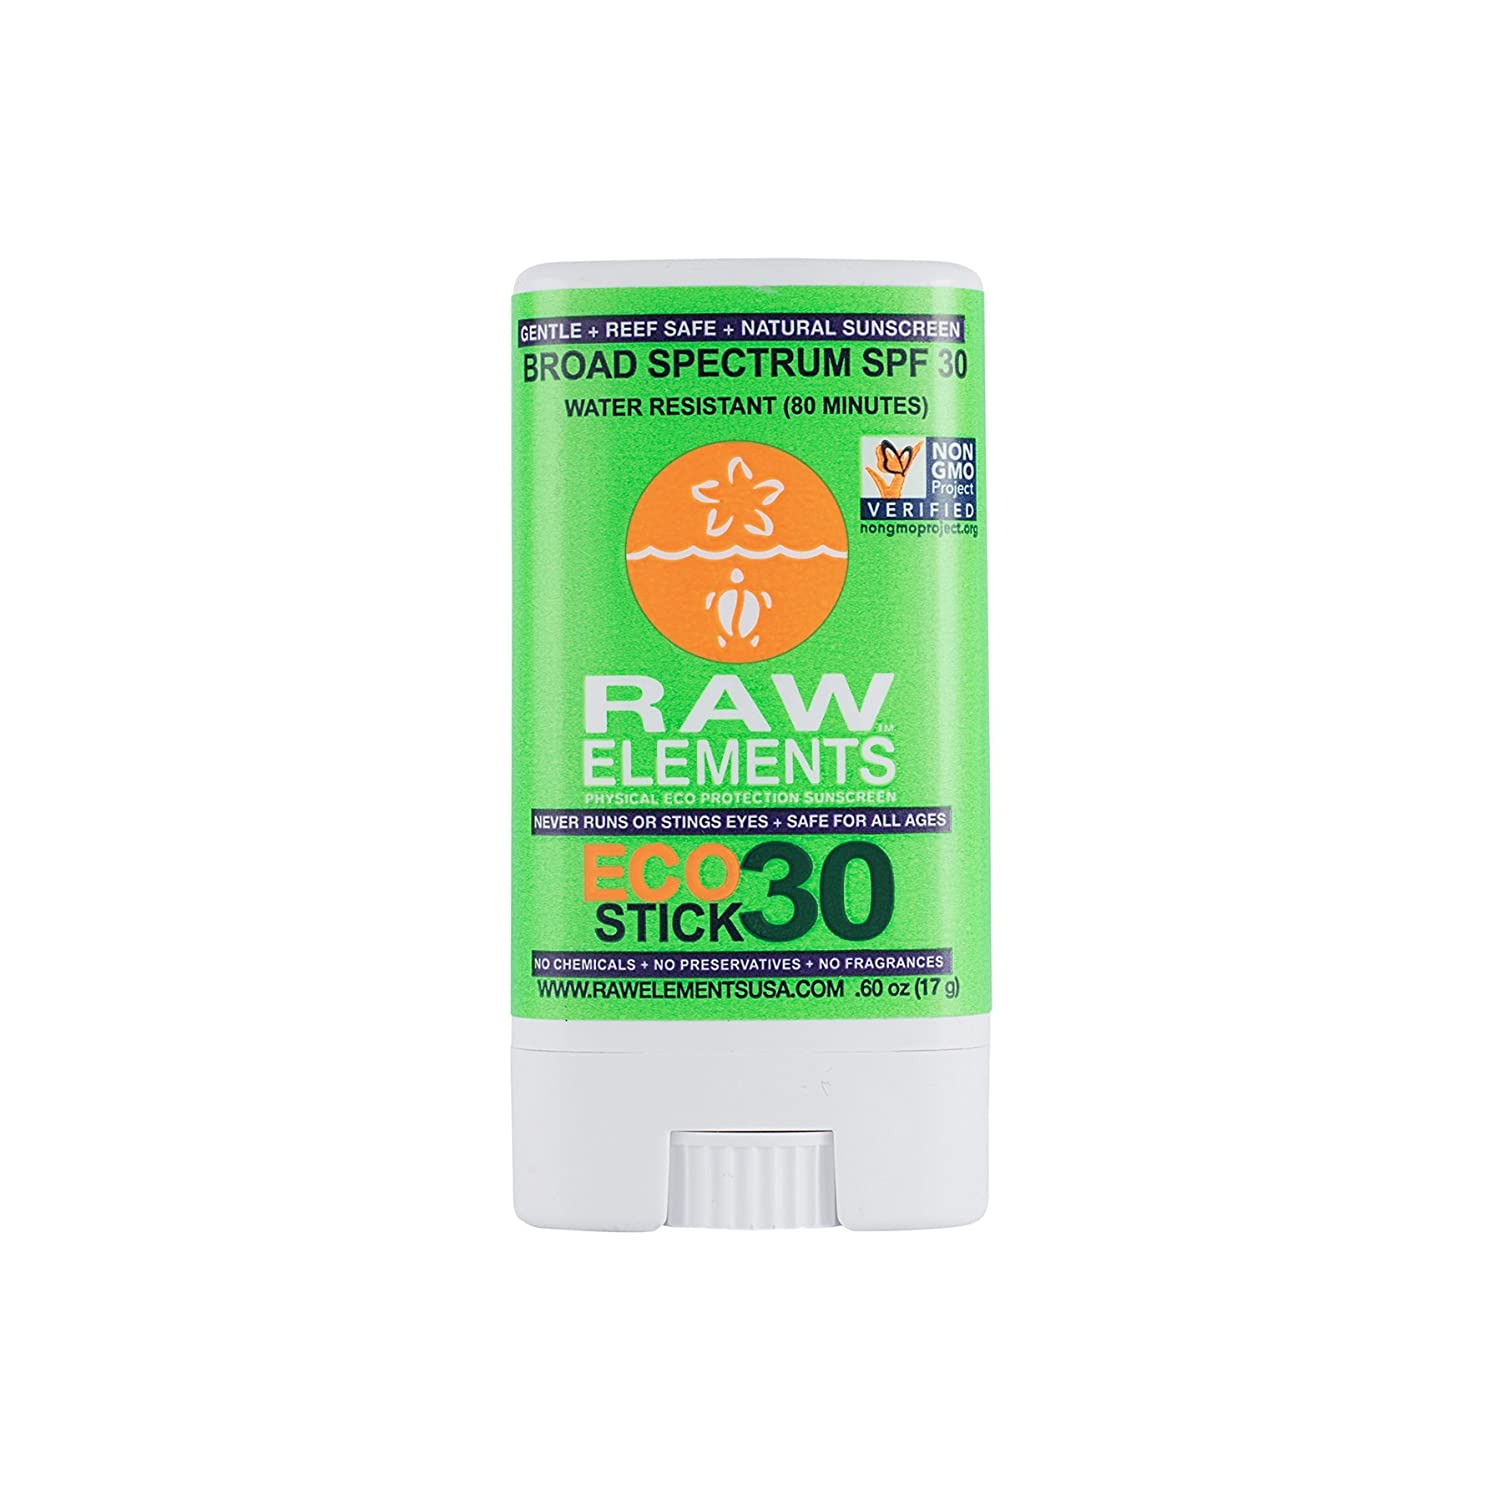 The Raw Elements Eco Tint Stick travel product recommended by Nikola Djordjevic on Lifney.